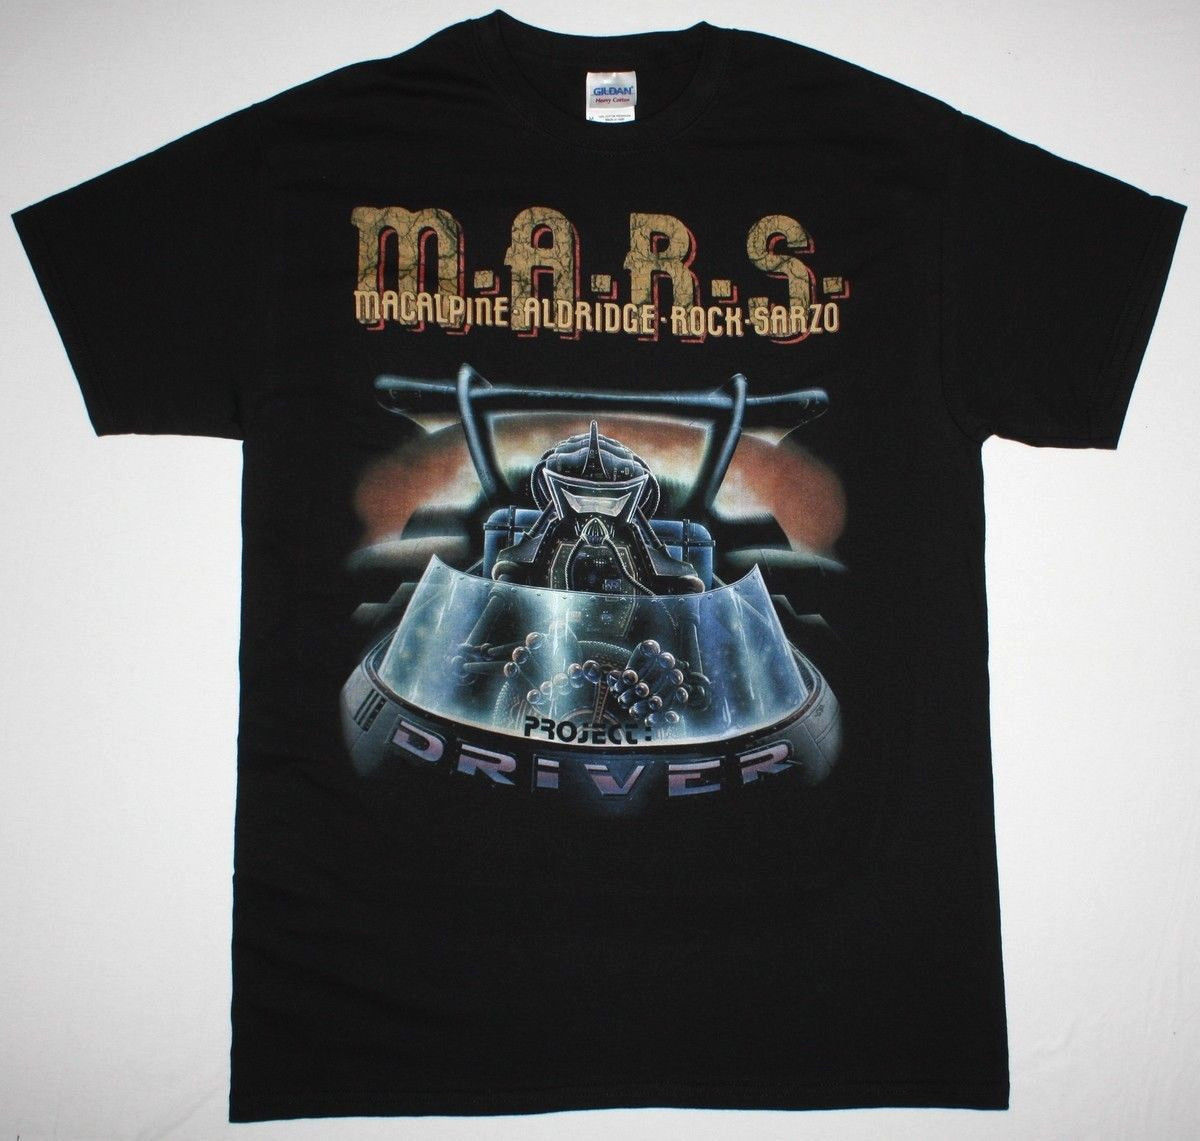 M.A.R.S. PROJECT DRIVER BLACK T SHIRT HEAVY METAL ROCK MACALPNE SARZO ALDRIDGE Summer Style Fashion Men T Shirts top tee